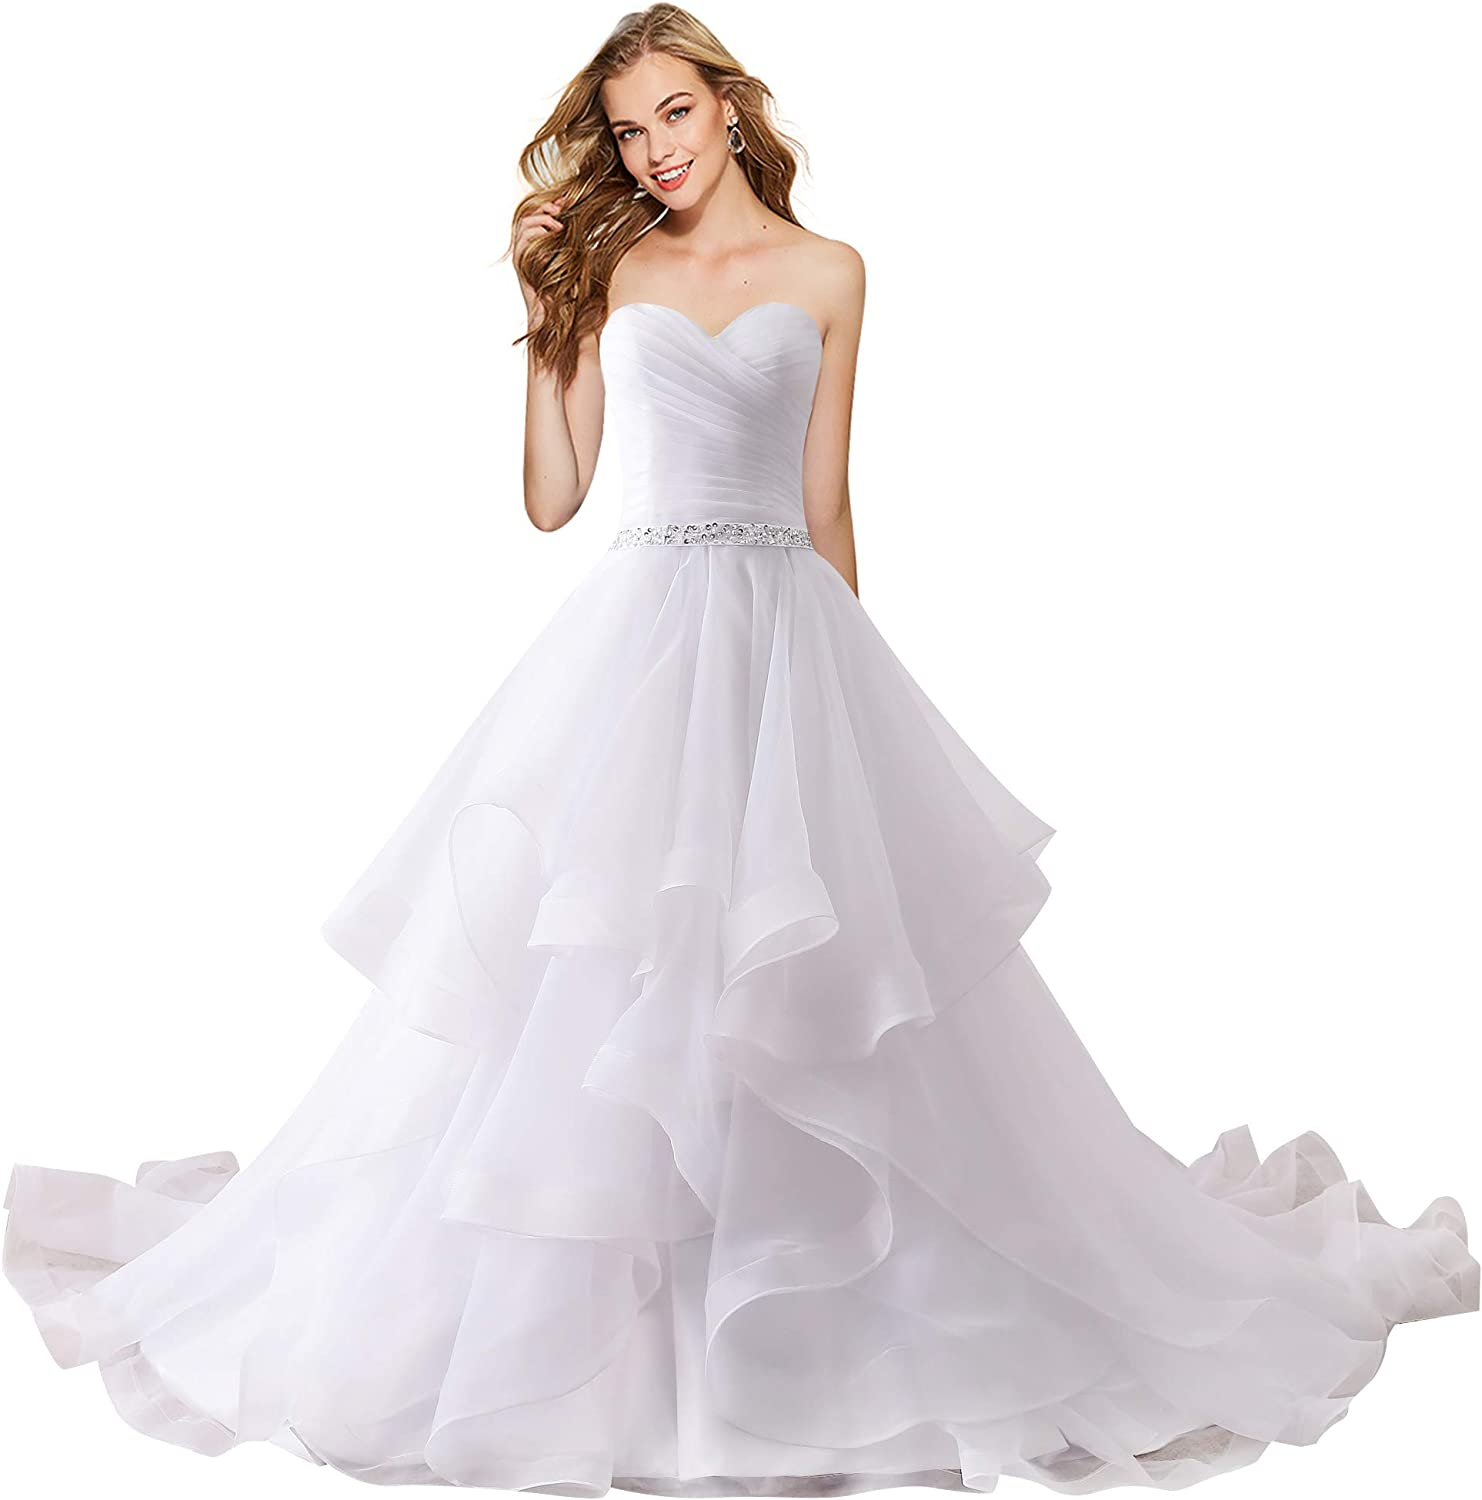 Apxpf Women S Organza Ruffles Ball Gown Wedding Dresses Bride Dress At Amazon Women S Clothing Store